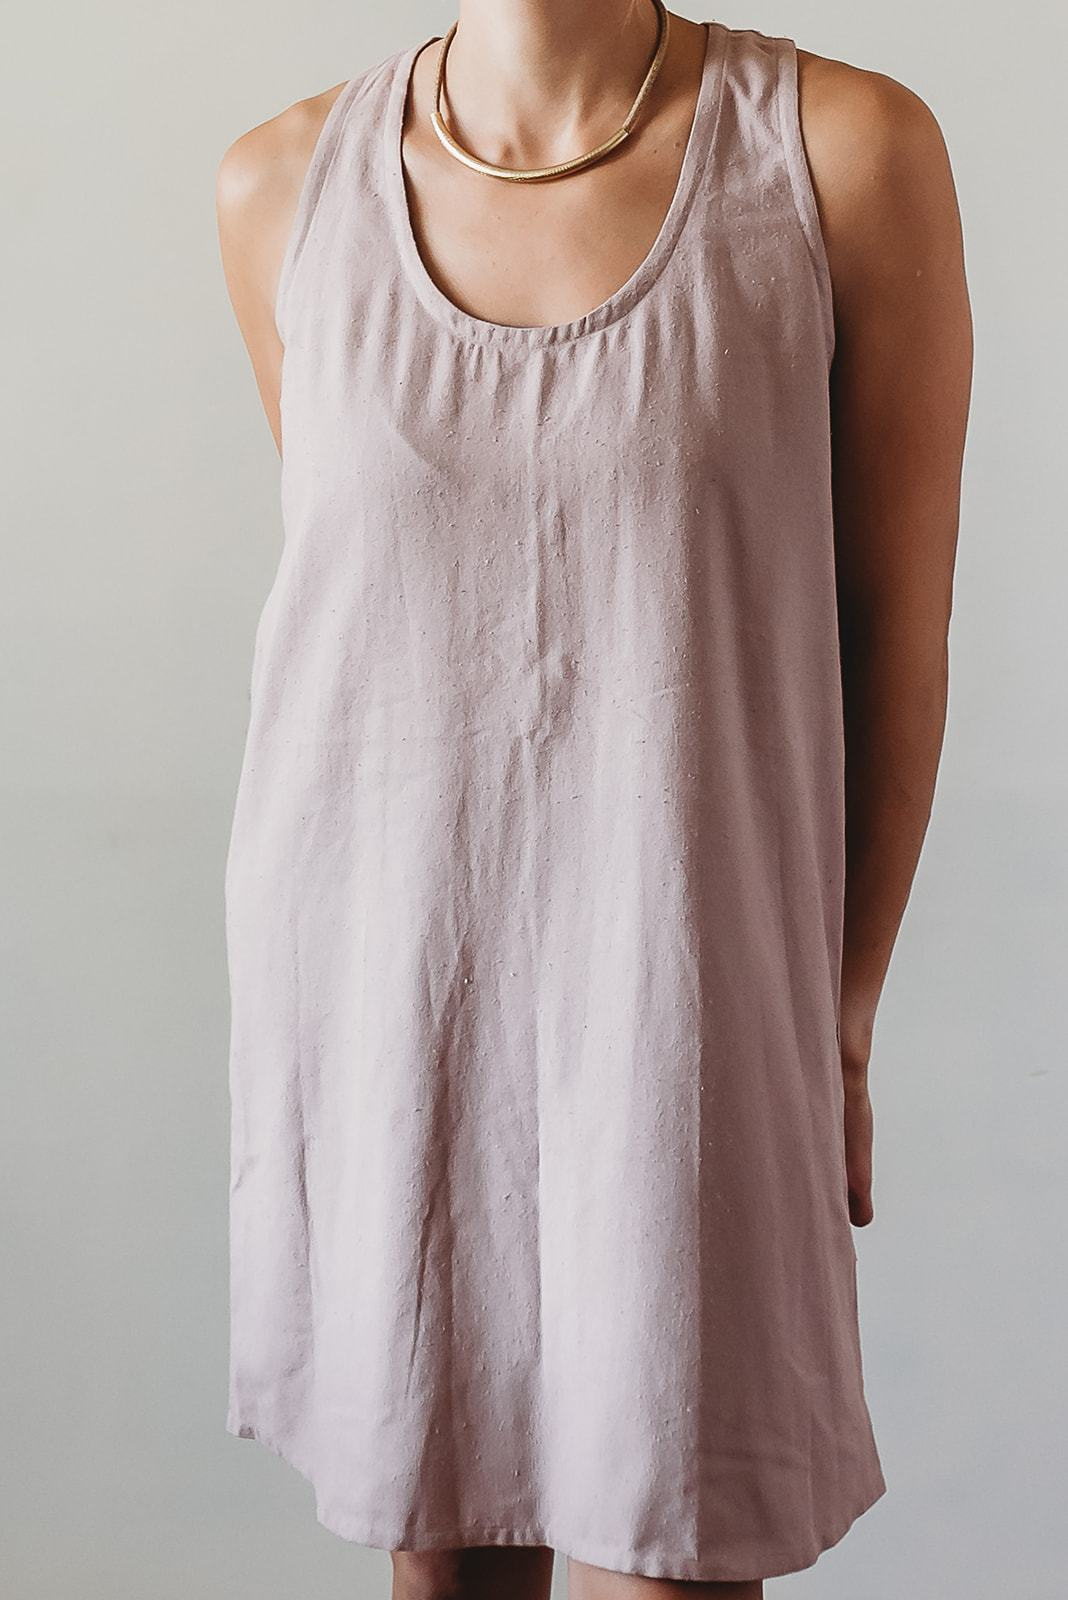 SAM raw silk dress, blush